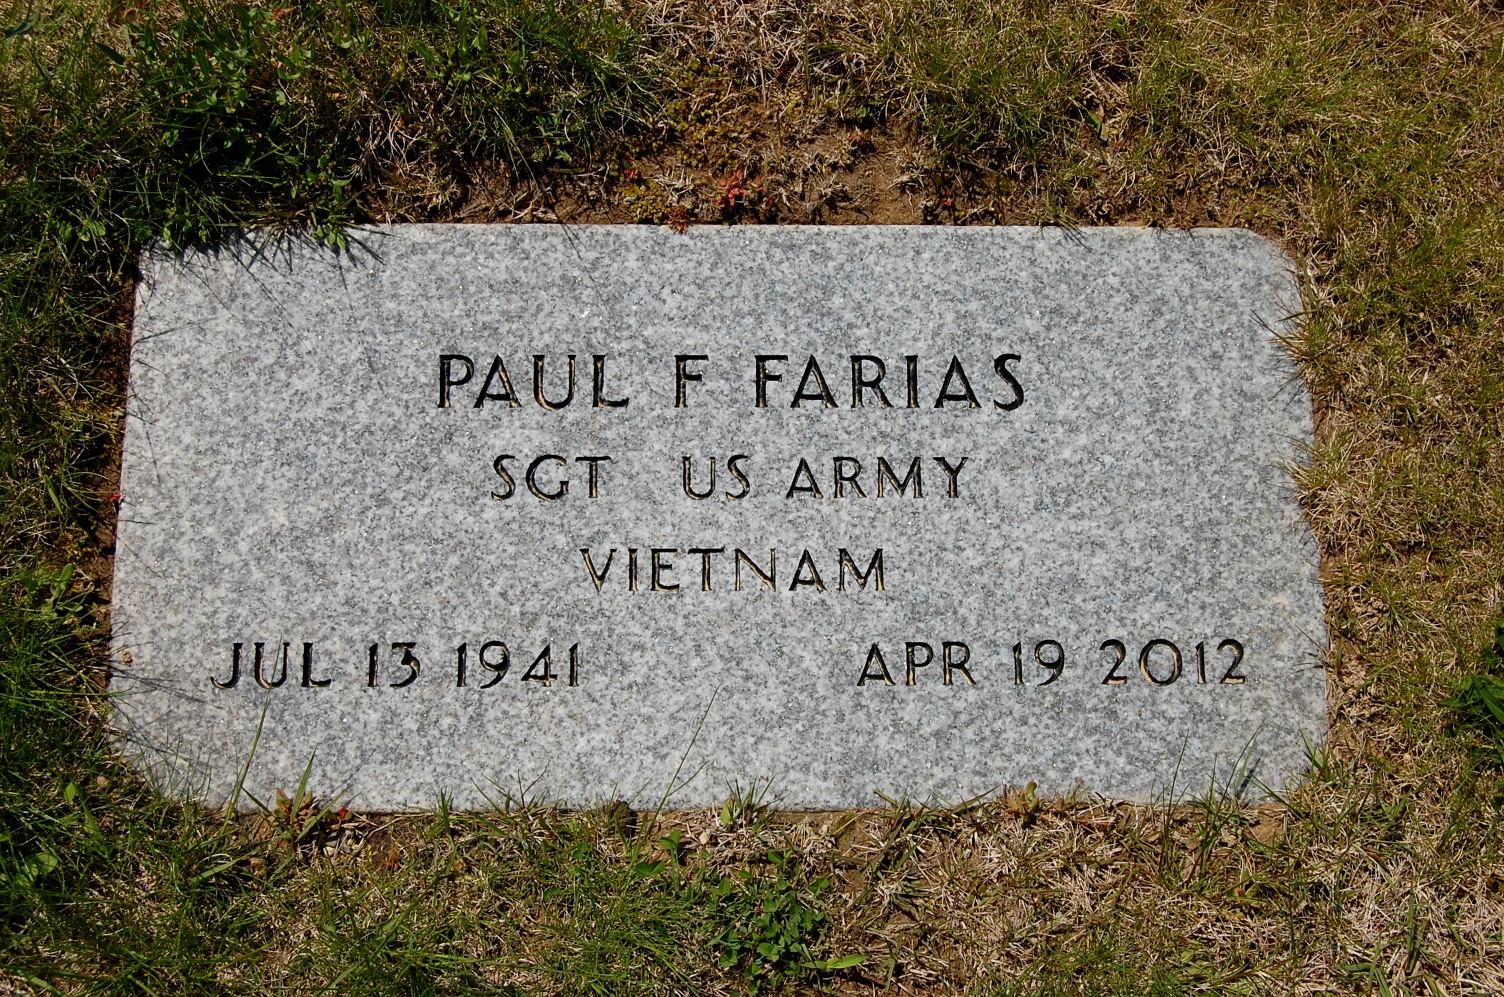 Interred Image: A3-71.jpg